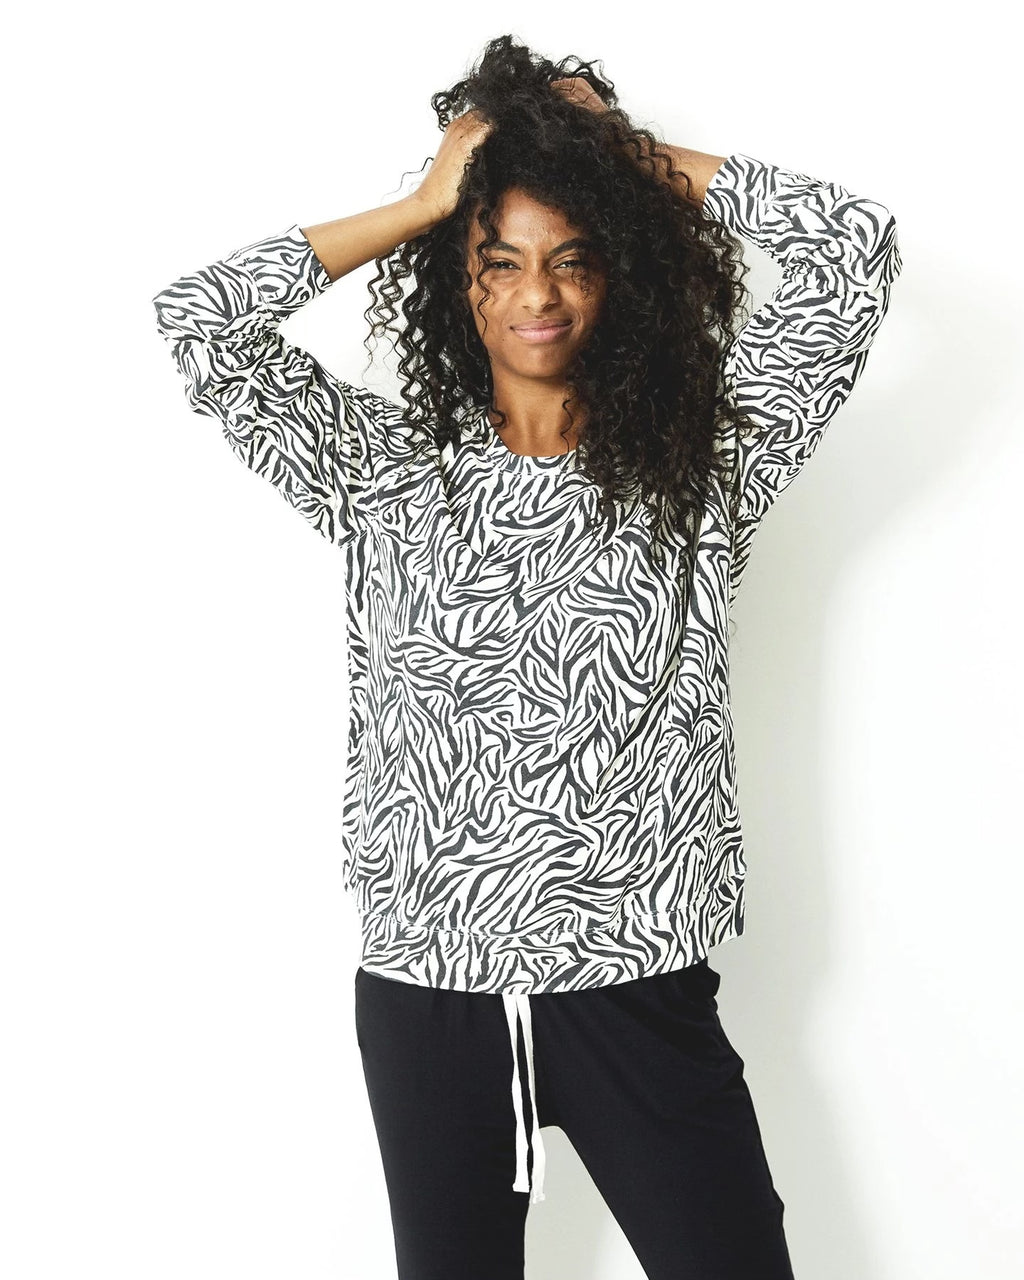 Stripe and Stare Zebra Print Sweatshirt - Chic Thrills Boutique